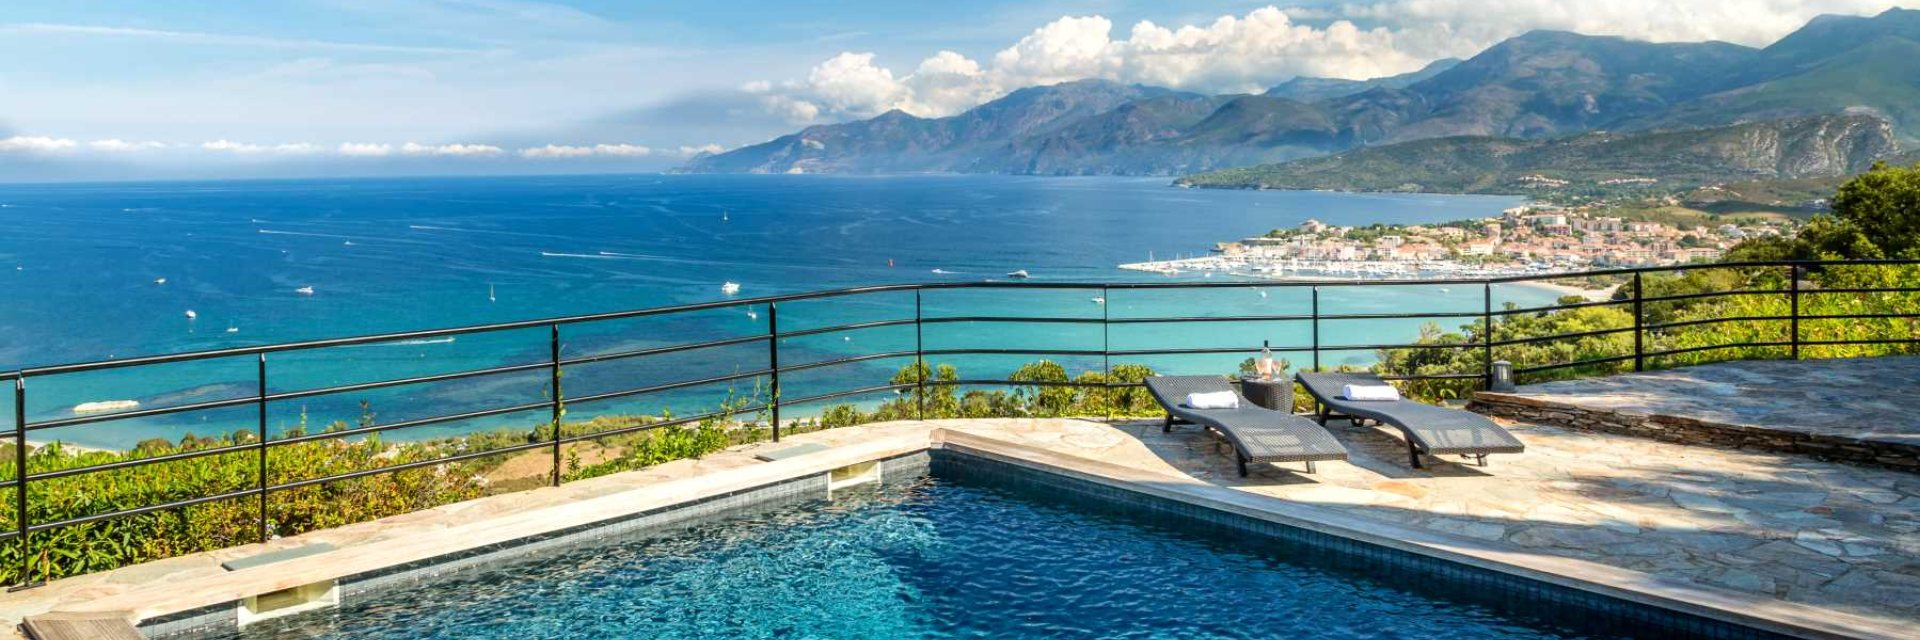 Luxury Holiday Villa With Pool Luxury Villas In Corsica